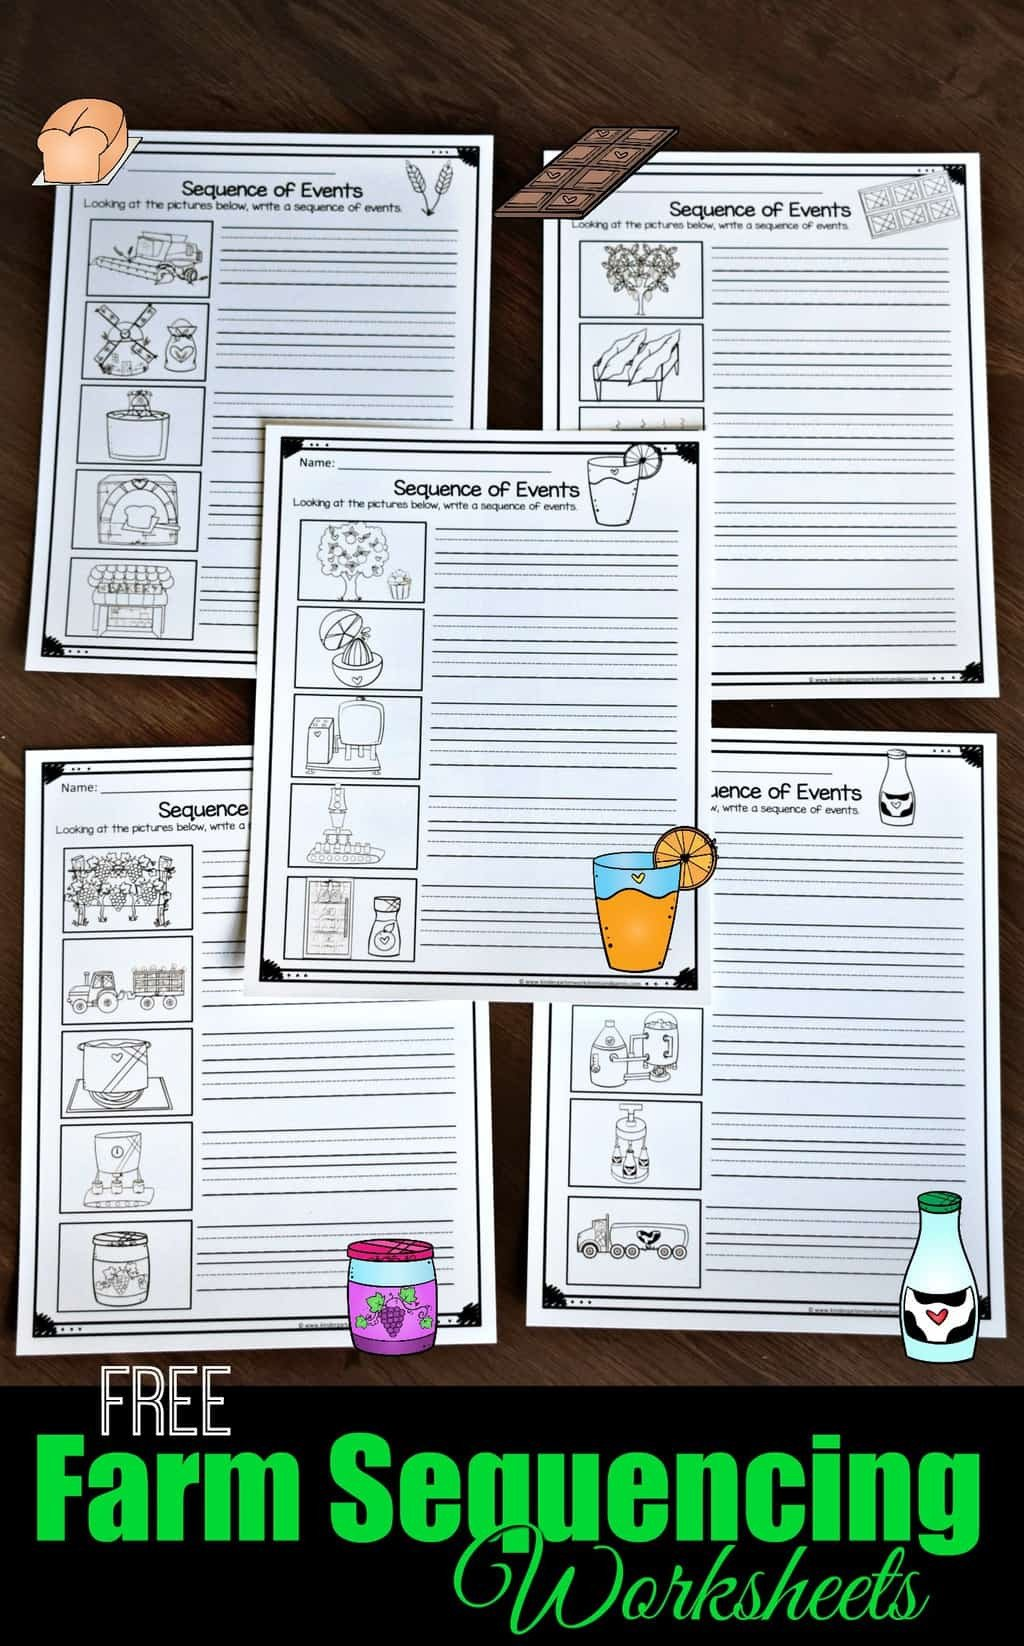 Cut and Paste Sequencing Worksheets Free Farm Sequencing Worksheets